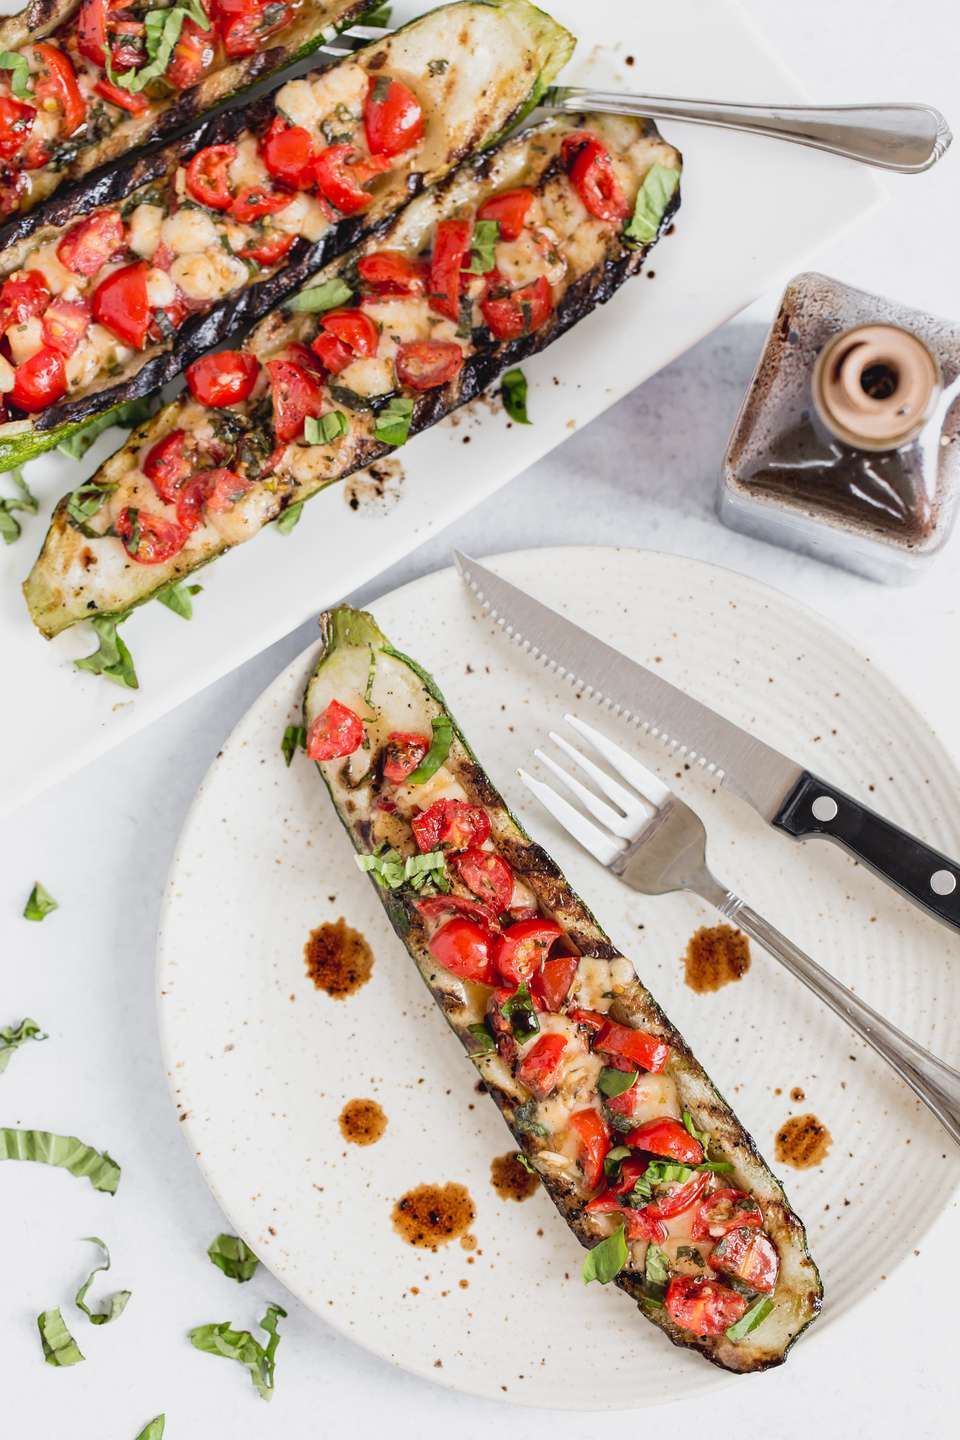 A plate with a grilled zucchini boat with caprese stuffing and additional boats behind it.